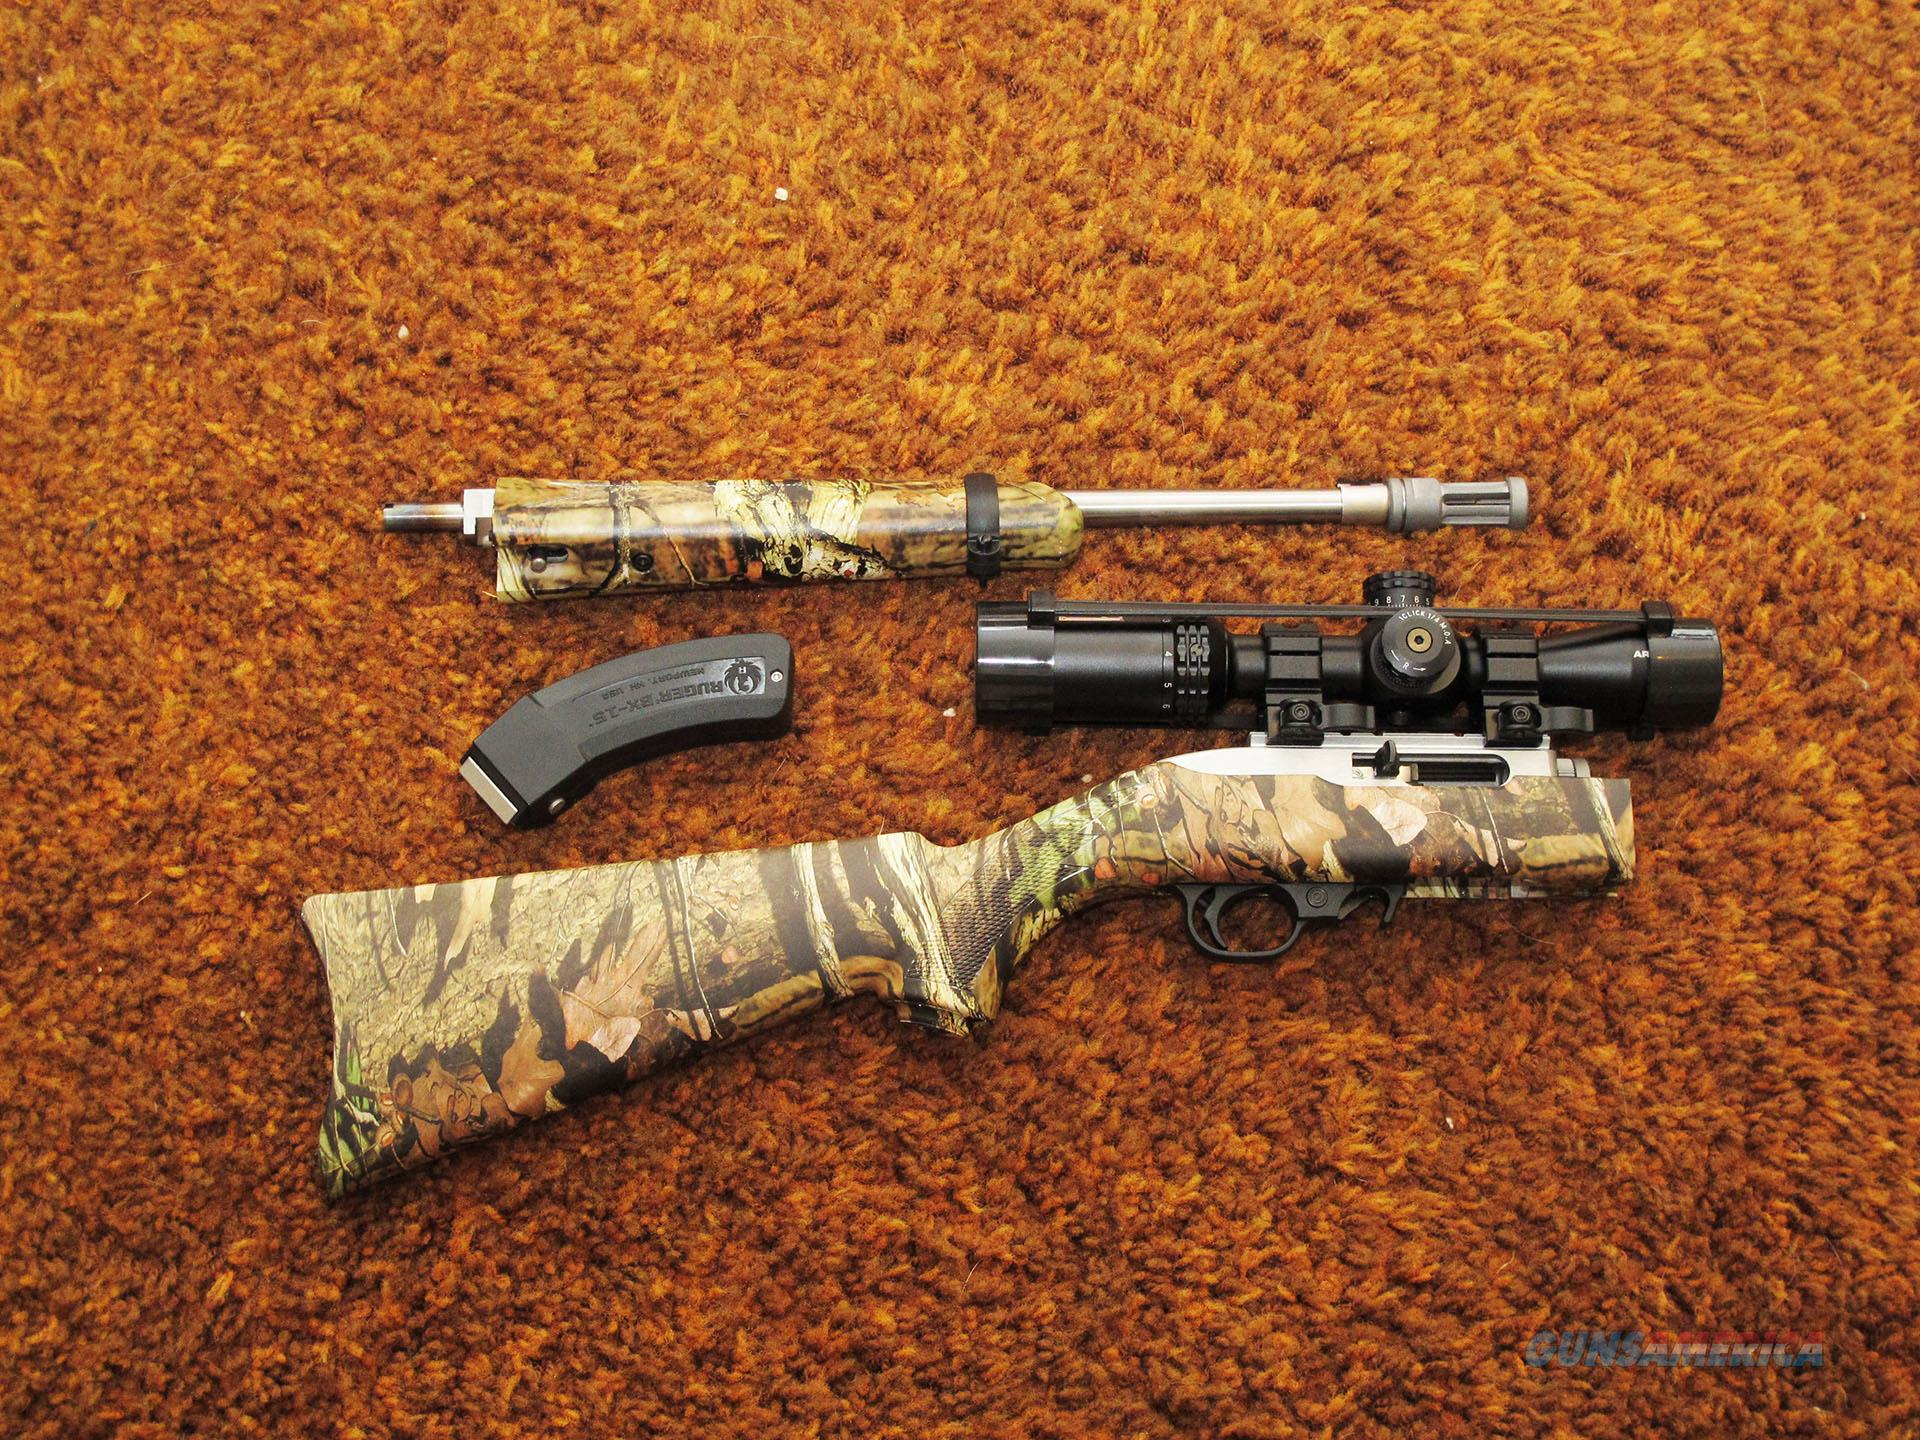 Ruger 10/22 Stainless Takedown Camo with Scope for sale